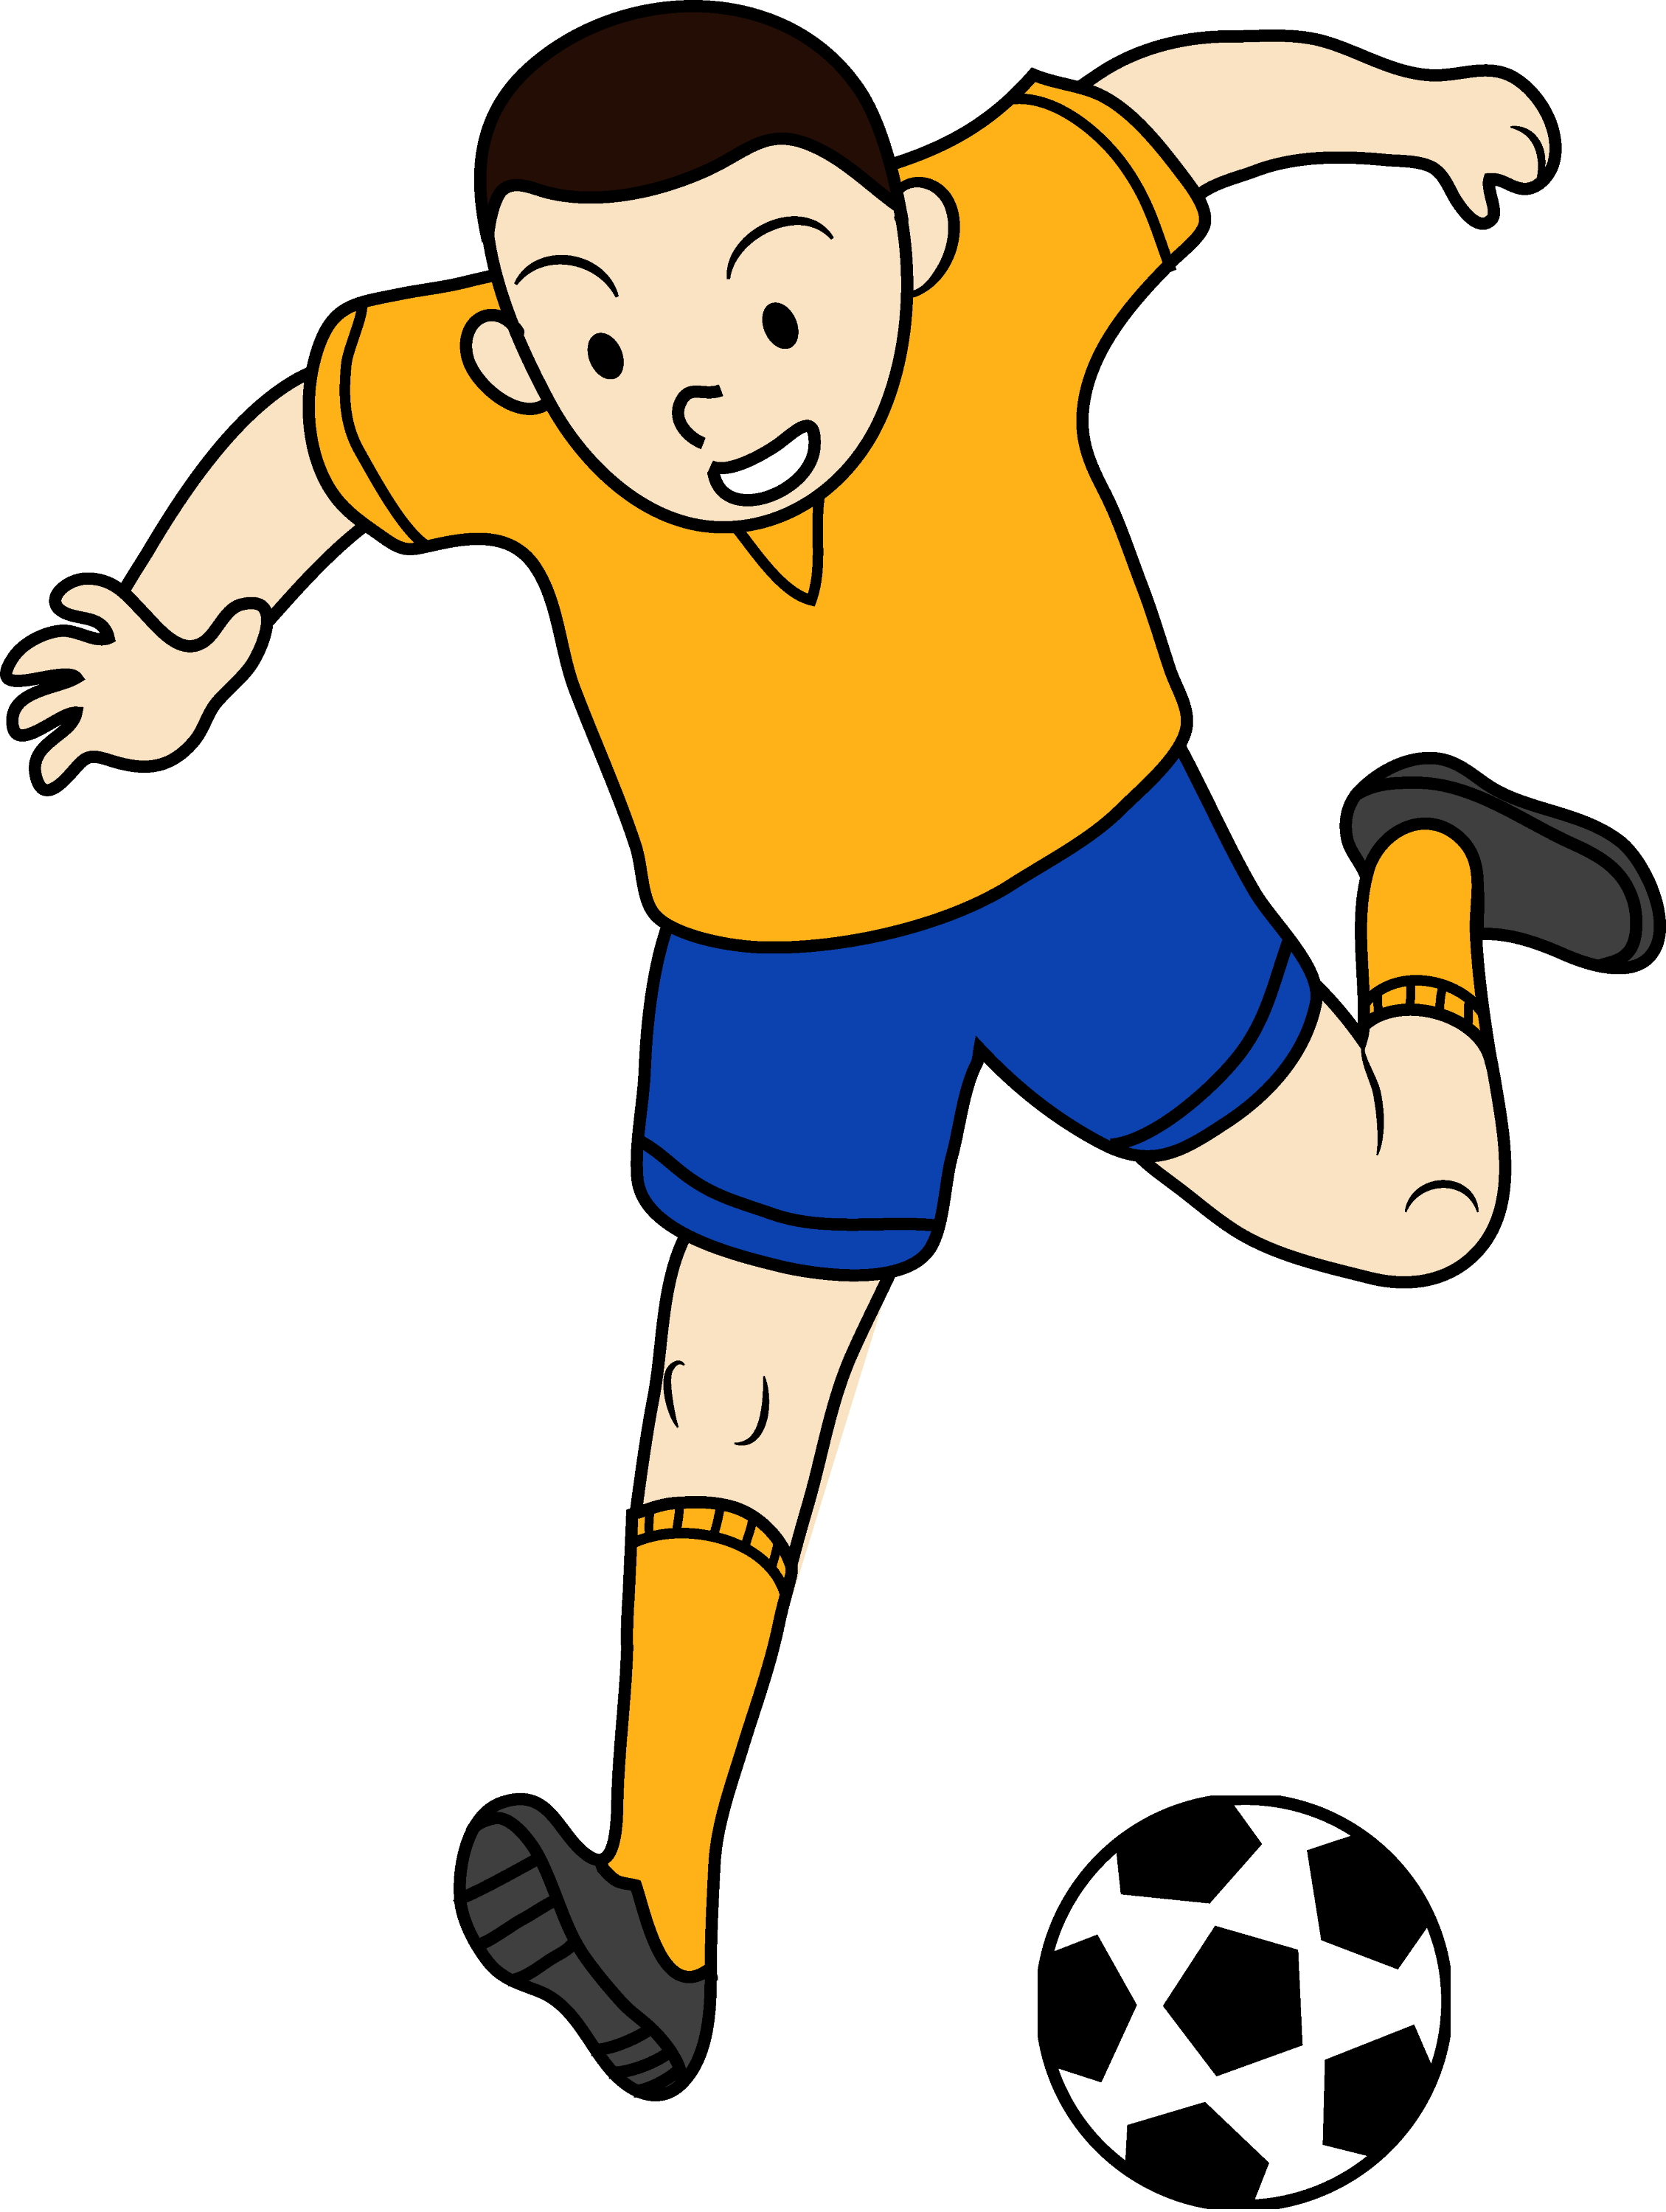 Kid Playing Soccer or Football - Free Clip Art